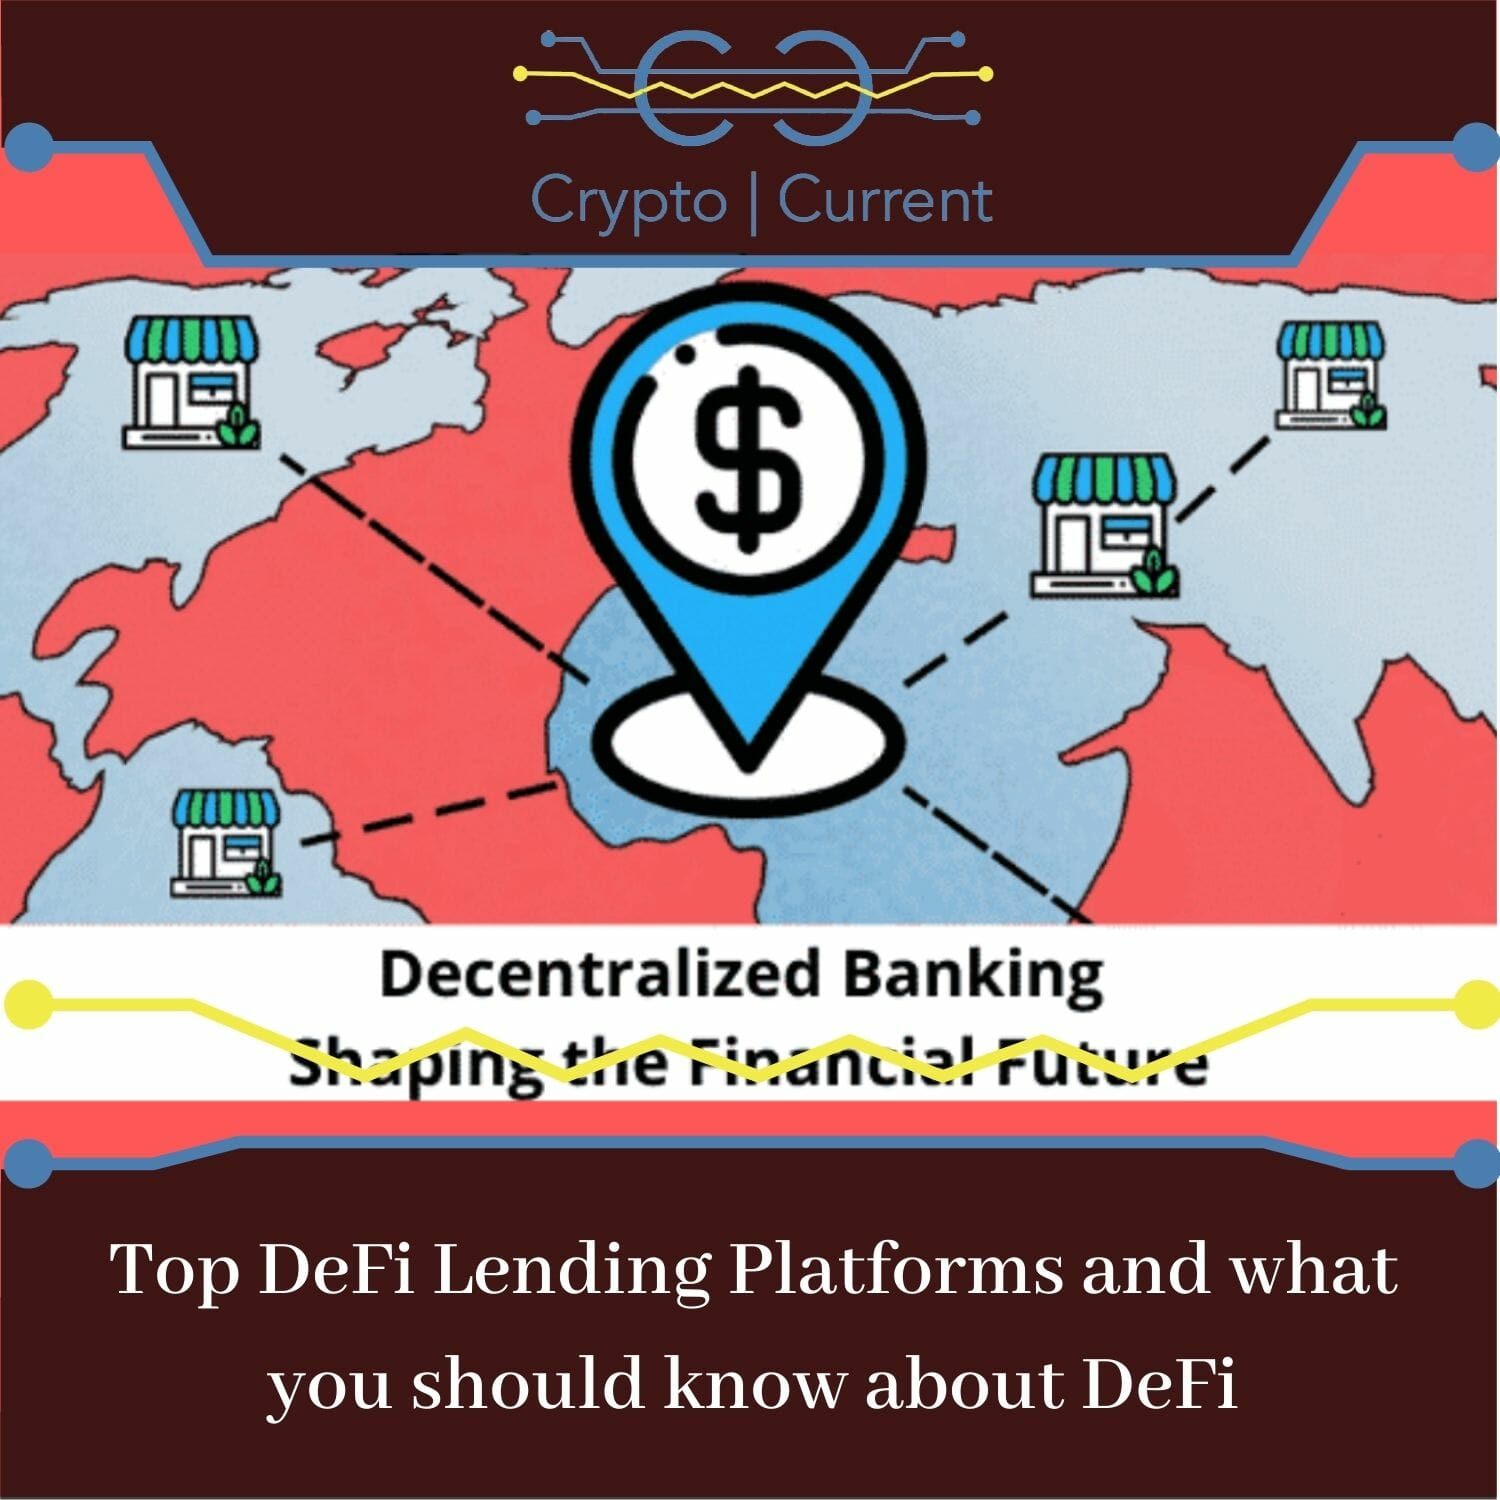 Top DeFi Lending Platforms and what you should know about DeFi